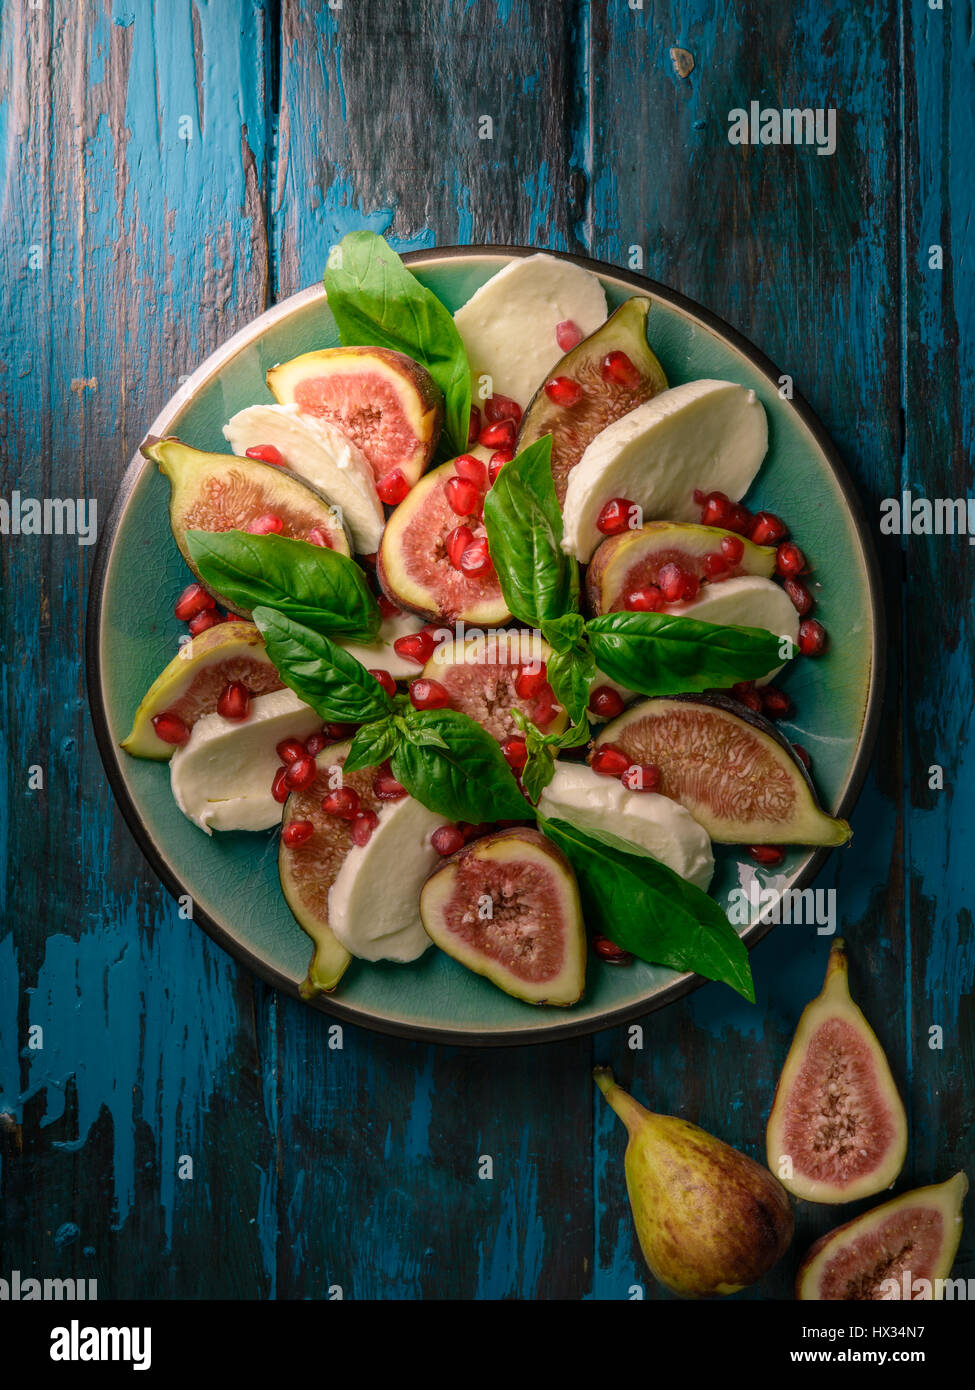 Figs with Mozzarella and Pomegranate Seeds on distressed wooden tabletop - Stock Image